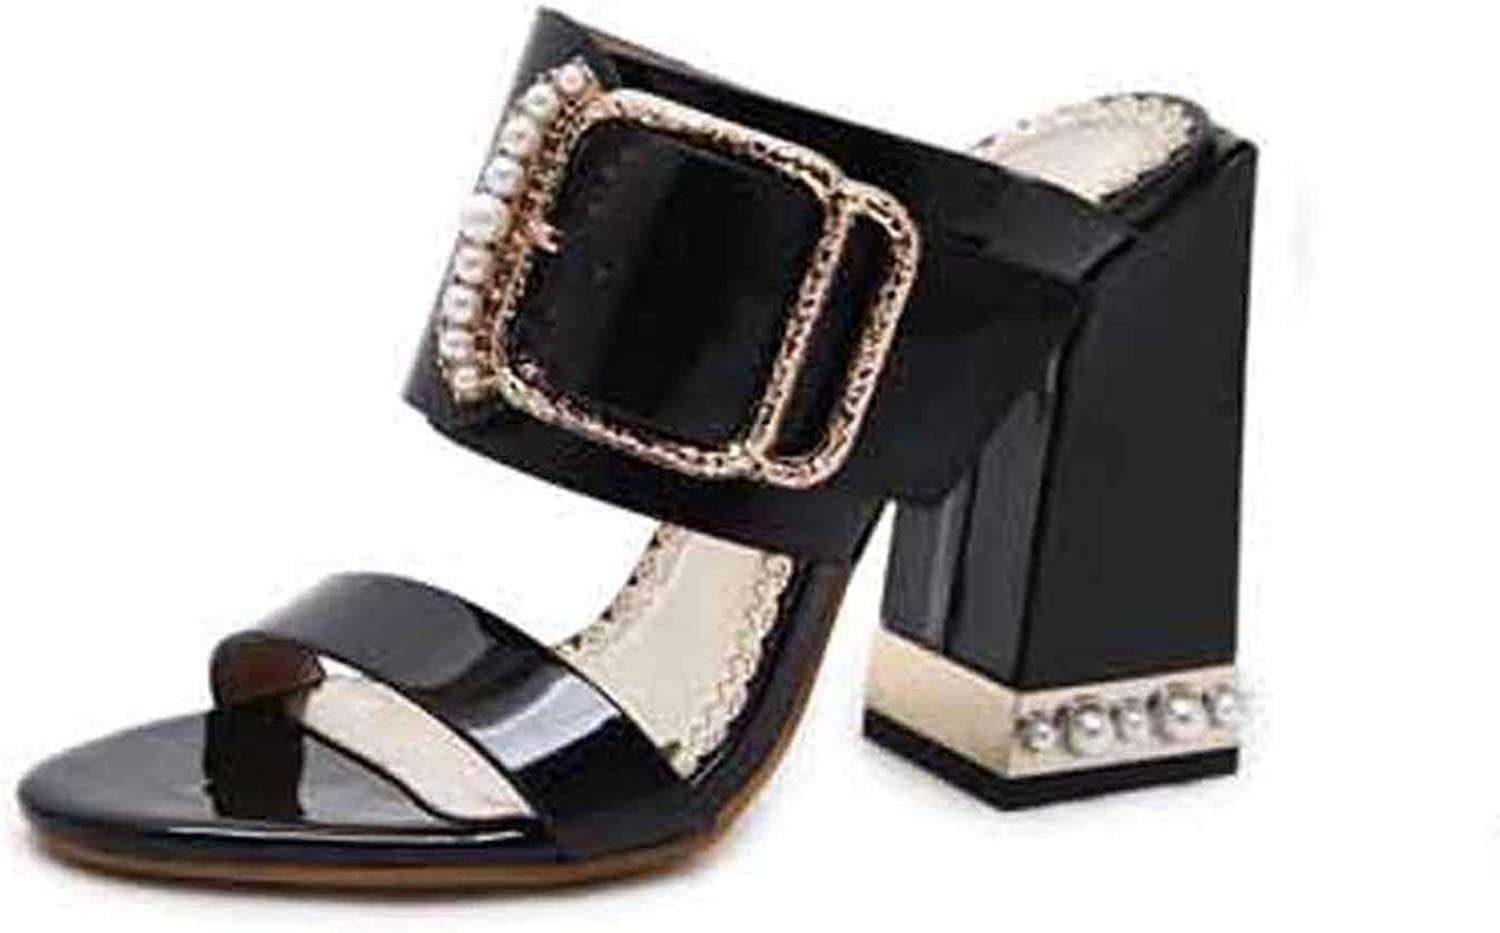 Sexy Crystal Buckle Square Heel Women Slippers Sandals Size 34-40 Apricot Black